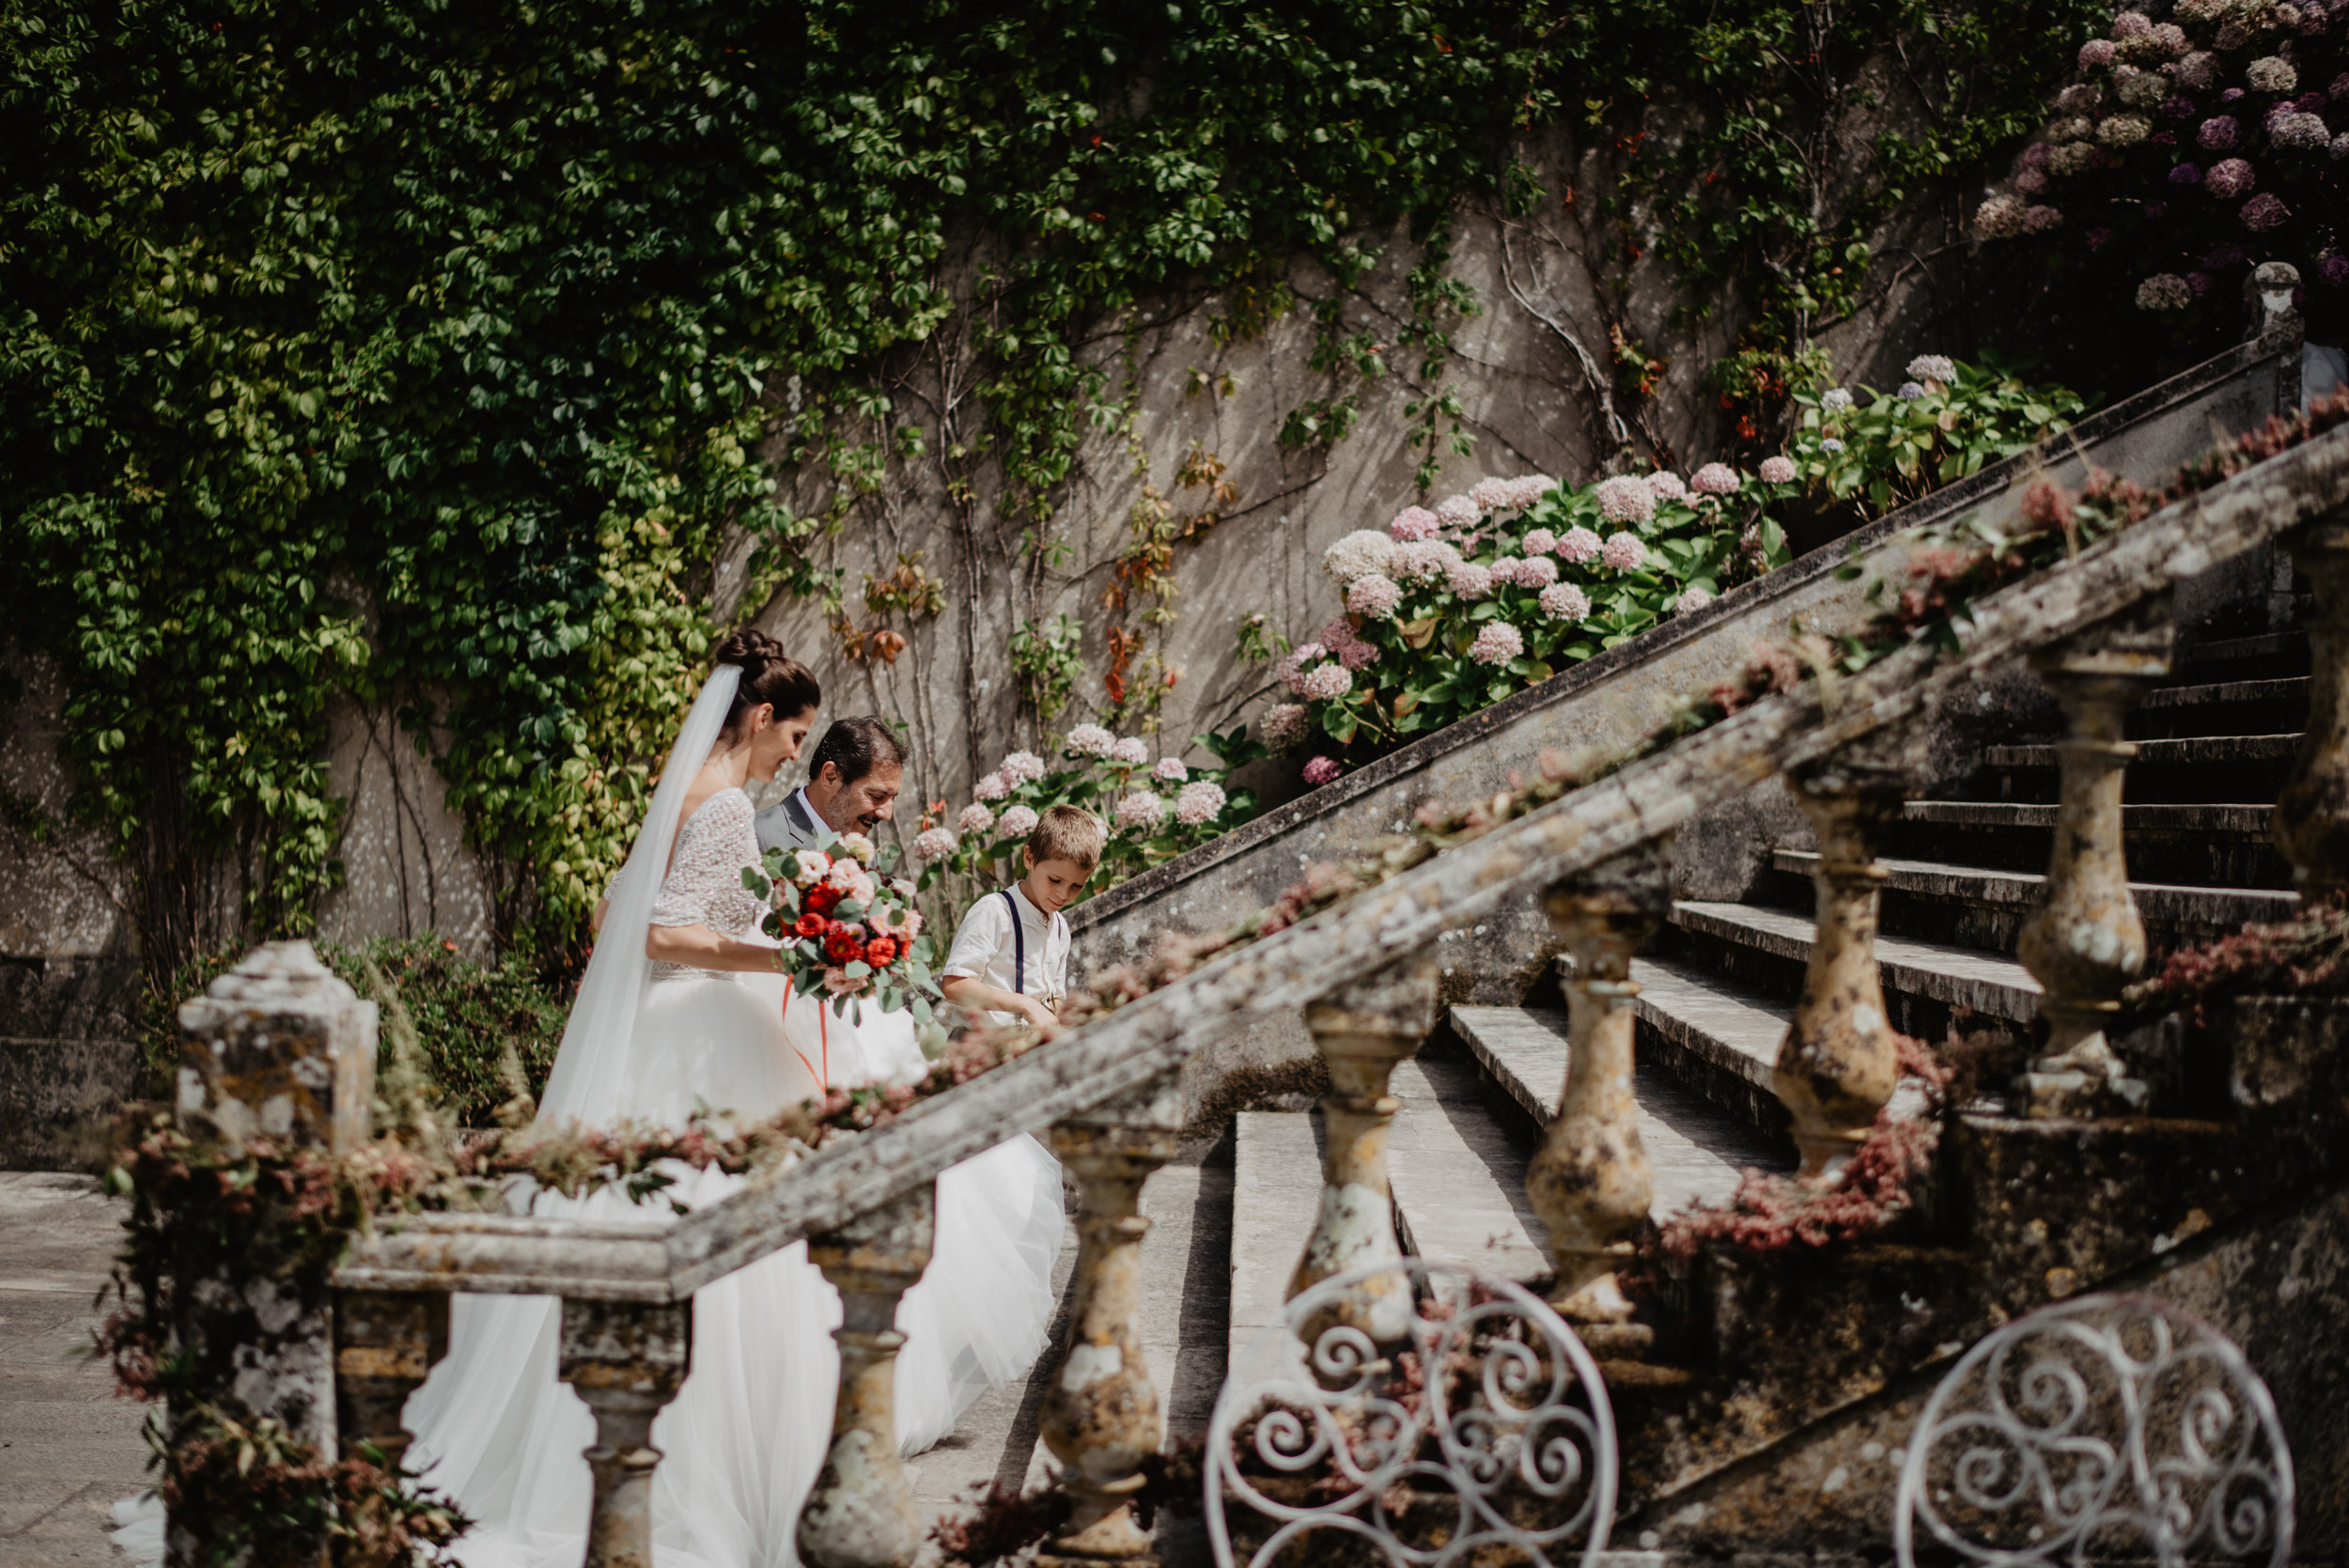 Lapela-photography-wedding-sintra-portugal-52.jpg